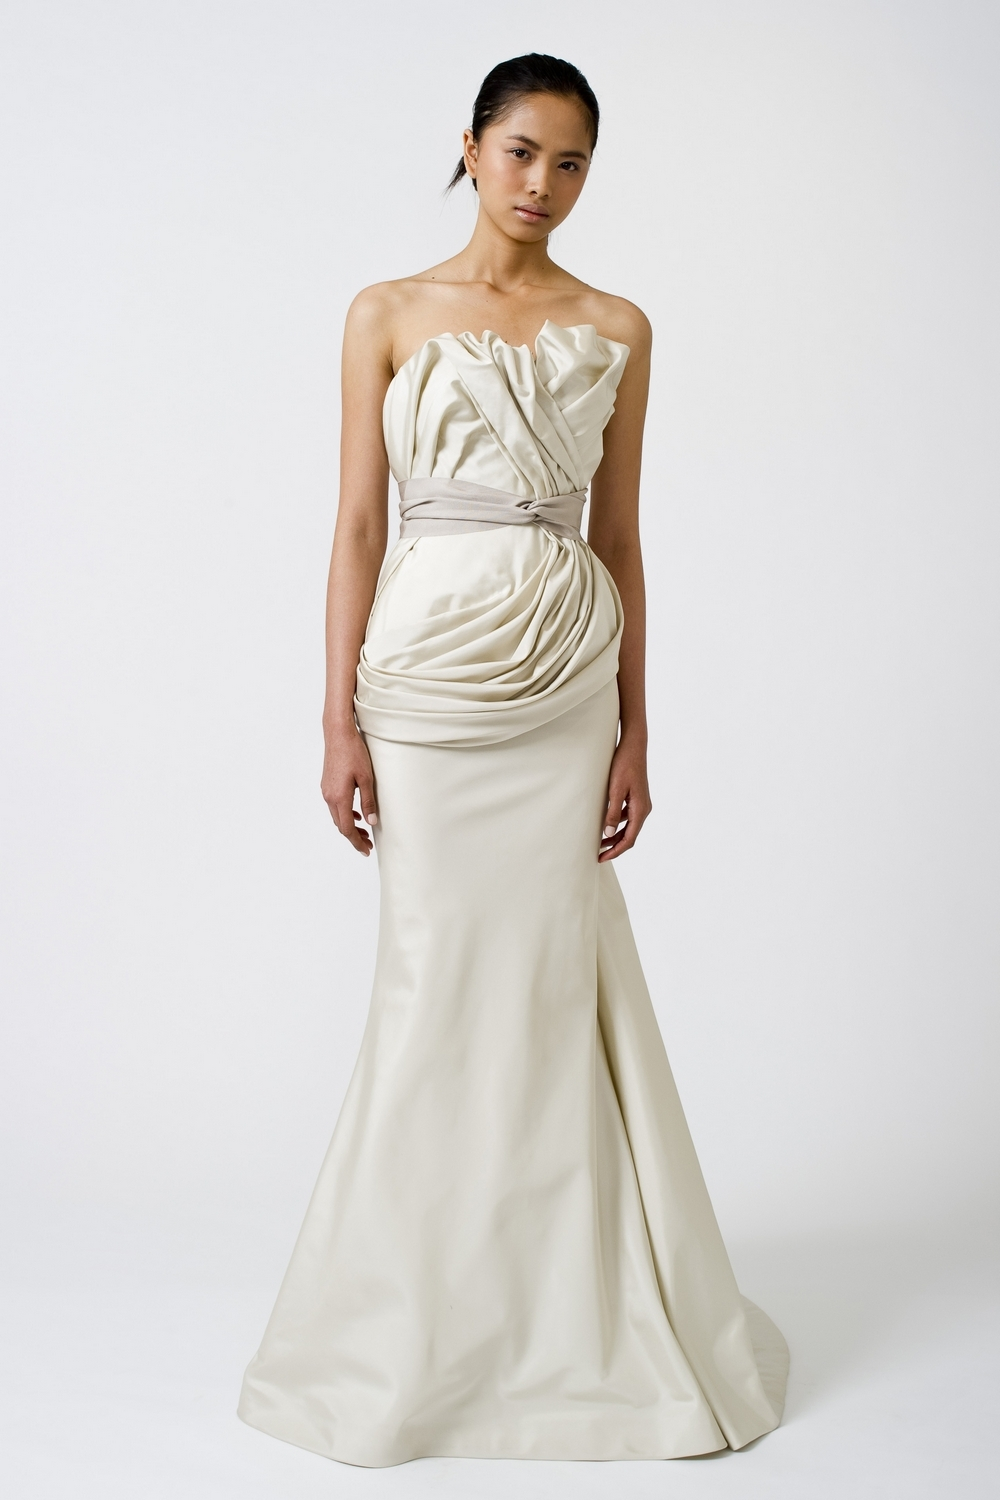 6-spring-2011-vera-wang-wedding-dress-mermaid-ivory.full